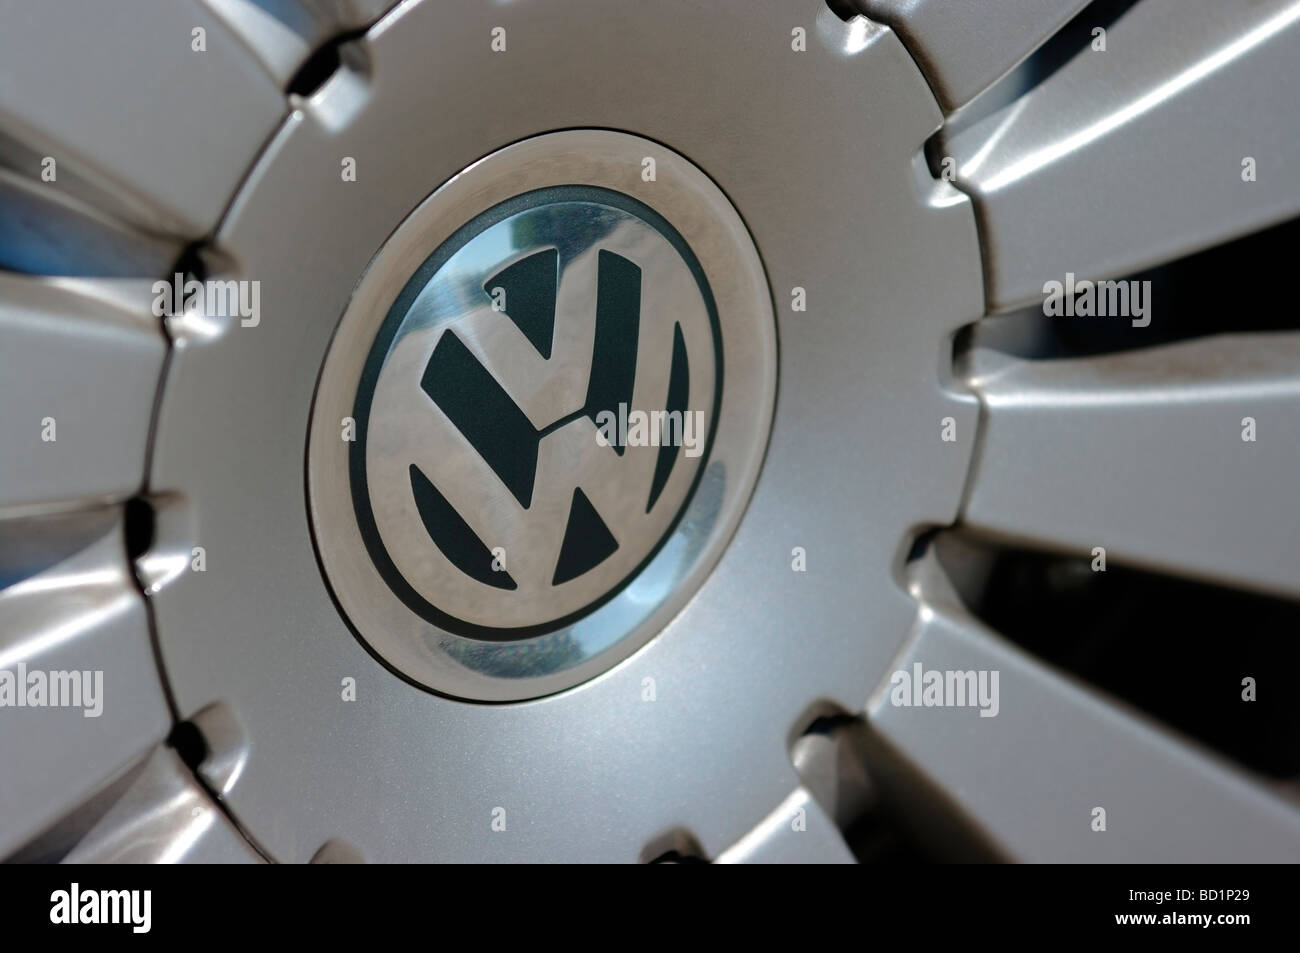 VW badge on alloy wheel - Stock Image